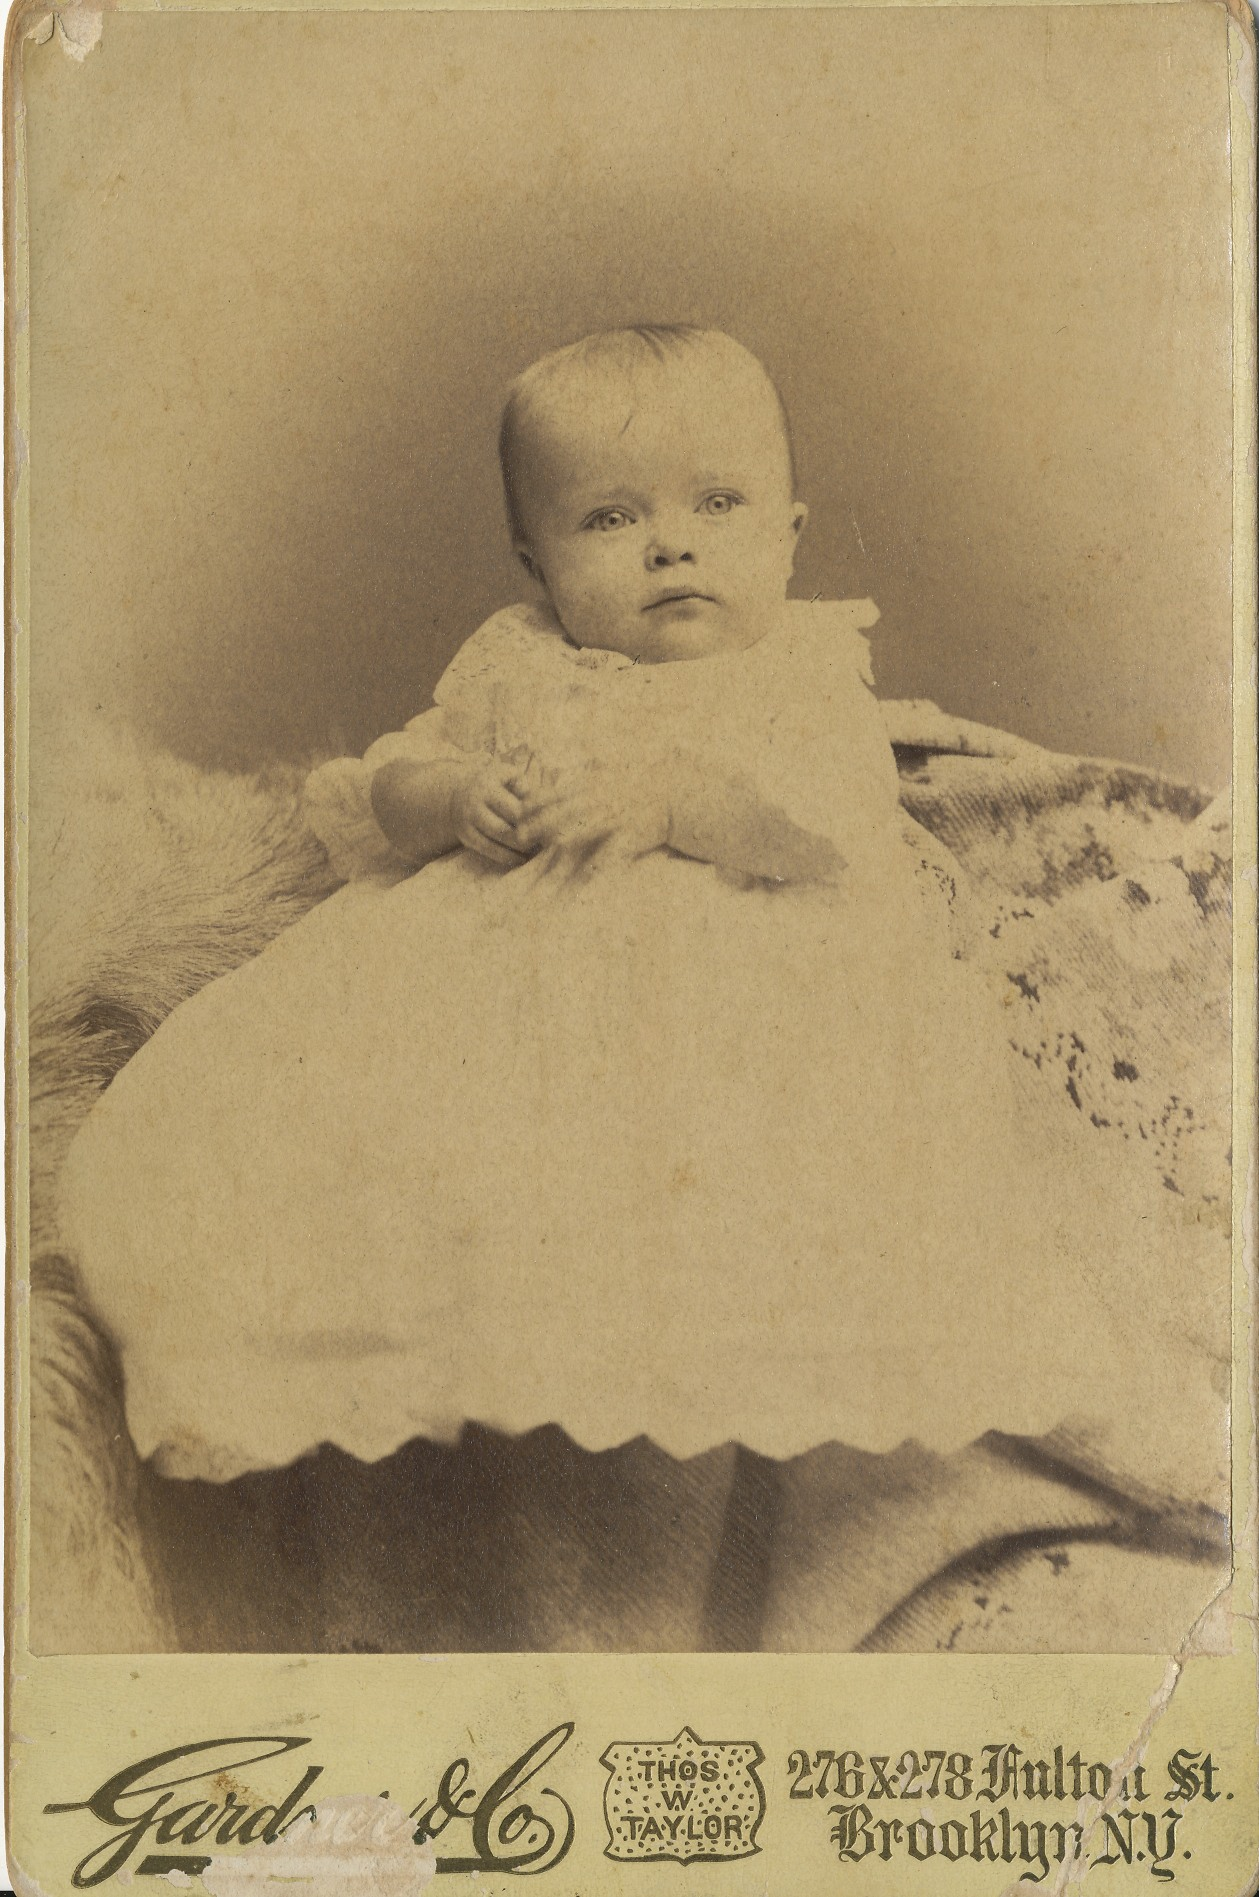 Margaret Mary Sheehan at age 9 months